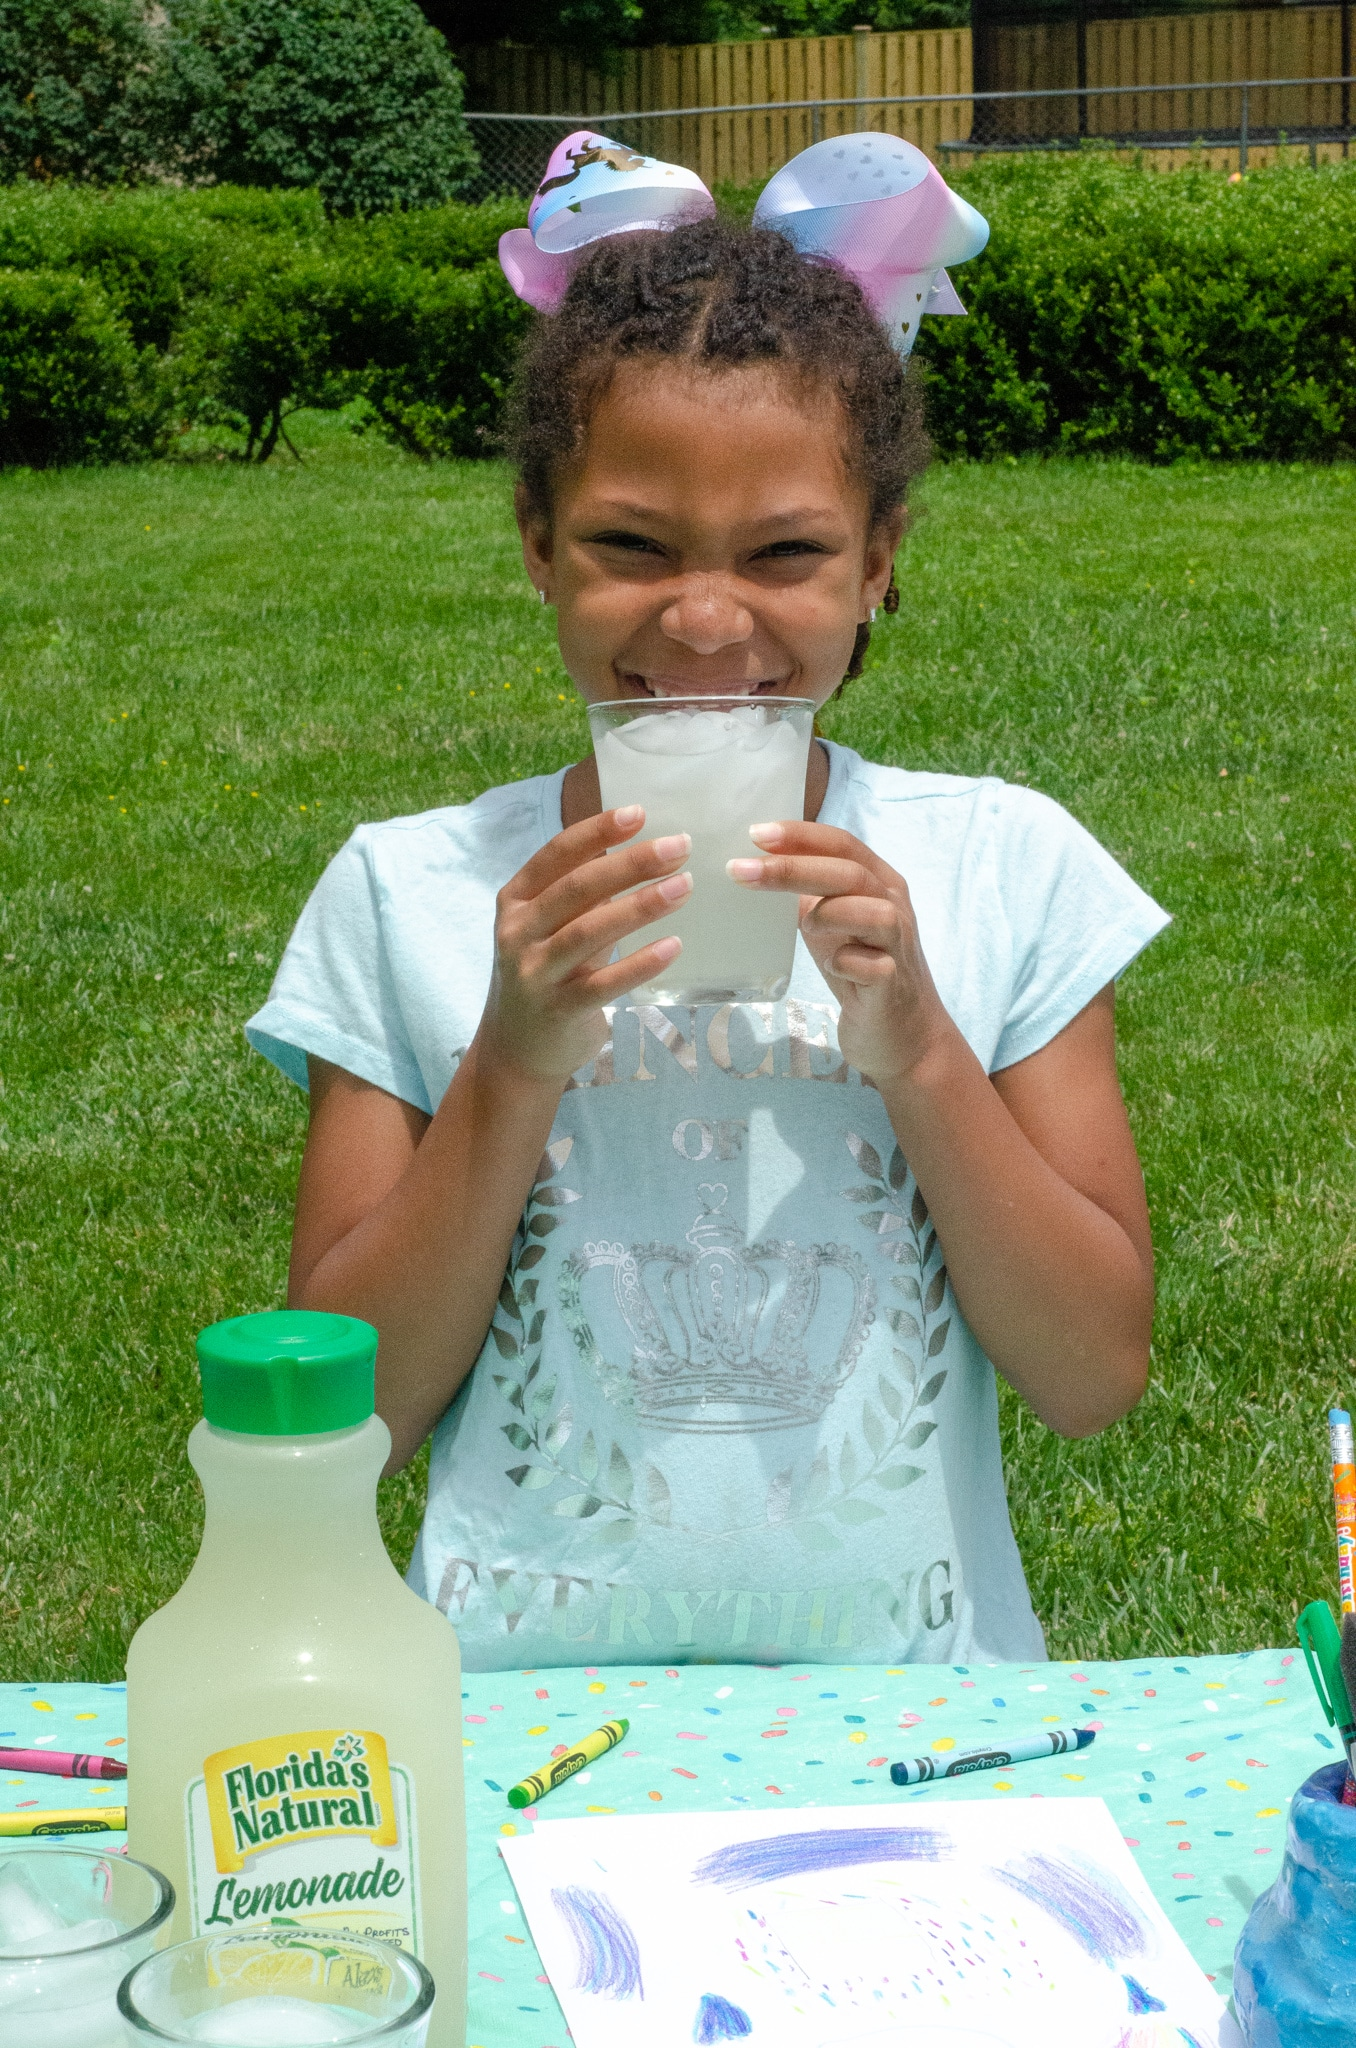 Lemonade Inspired Art Happy Esuun. Looking for a fun way to keep the kids entertained this summer? Celebrate the start of summer with Lemonade-Inspired Art In the Backyard.